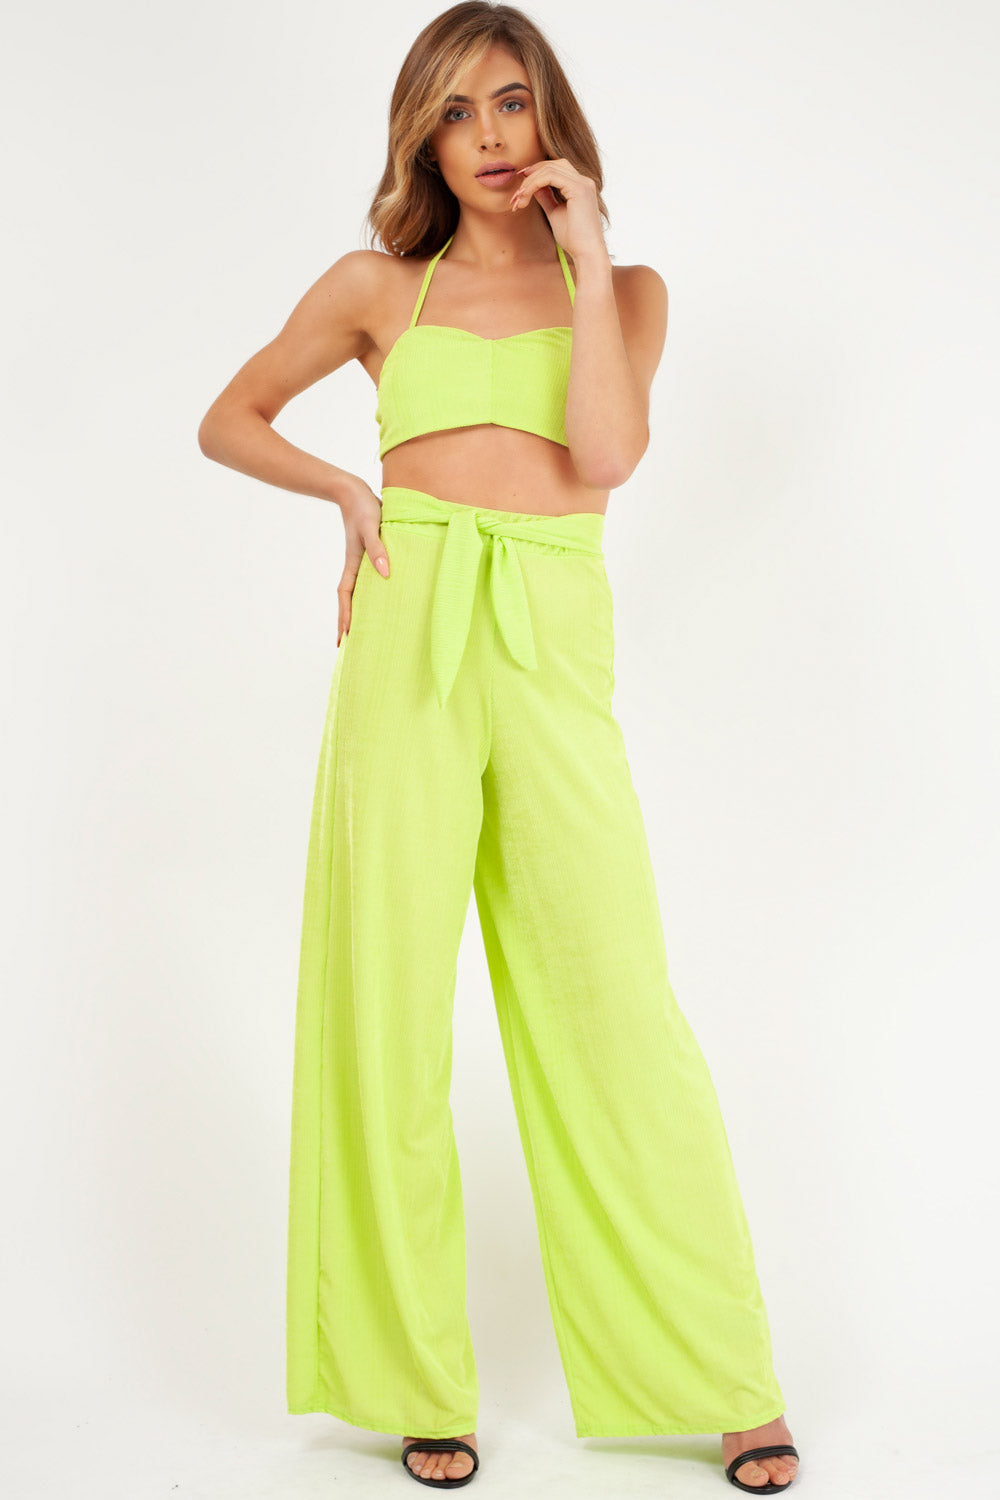 neon yellow crop top and trousers set